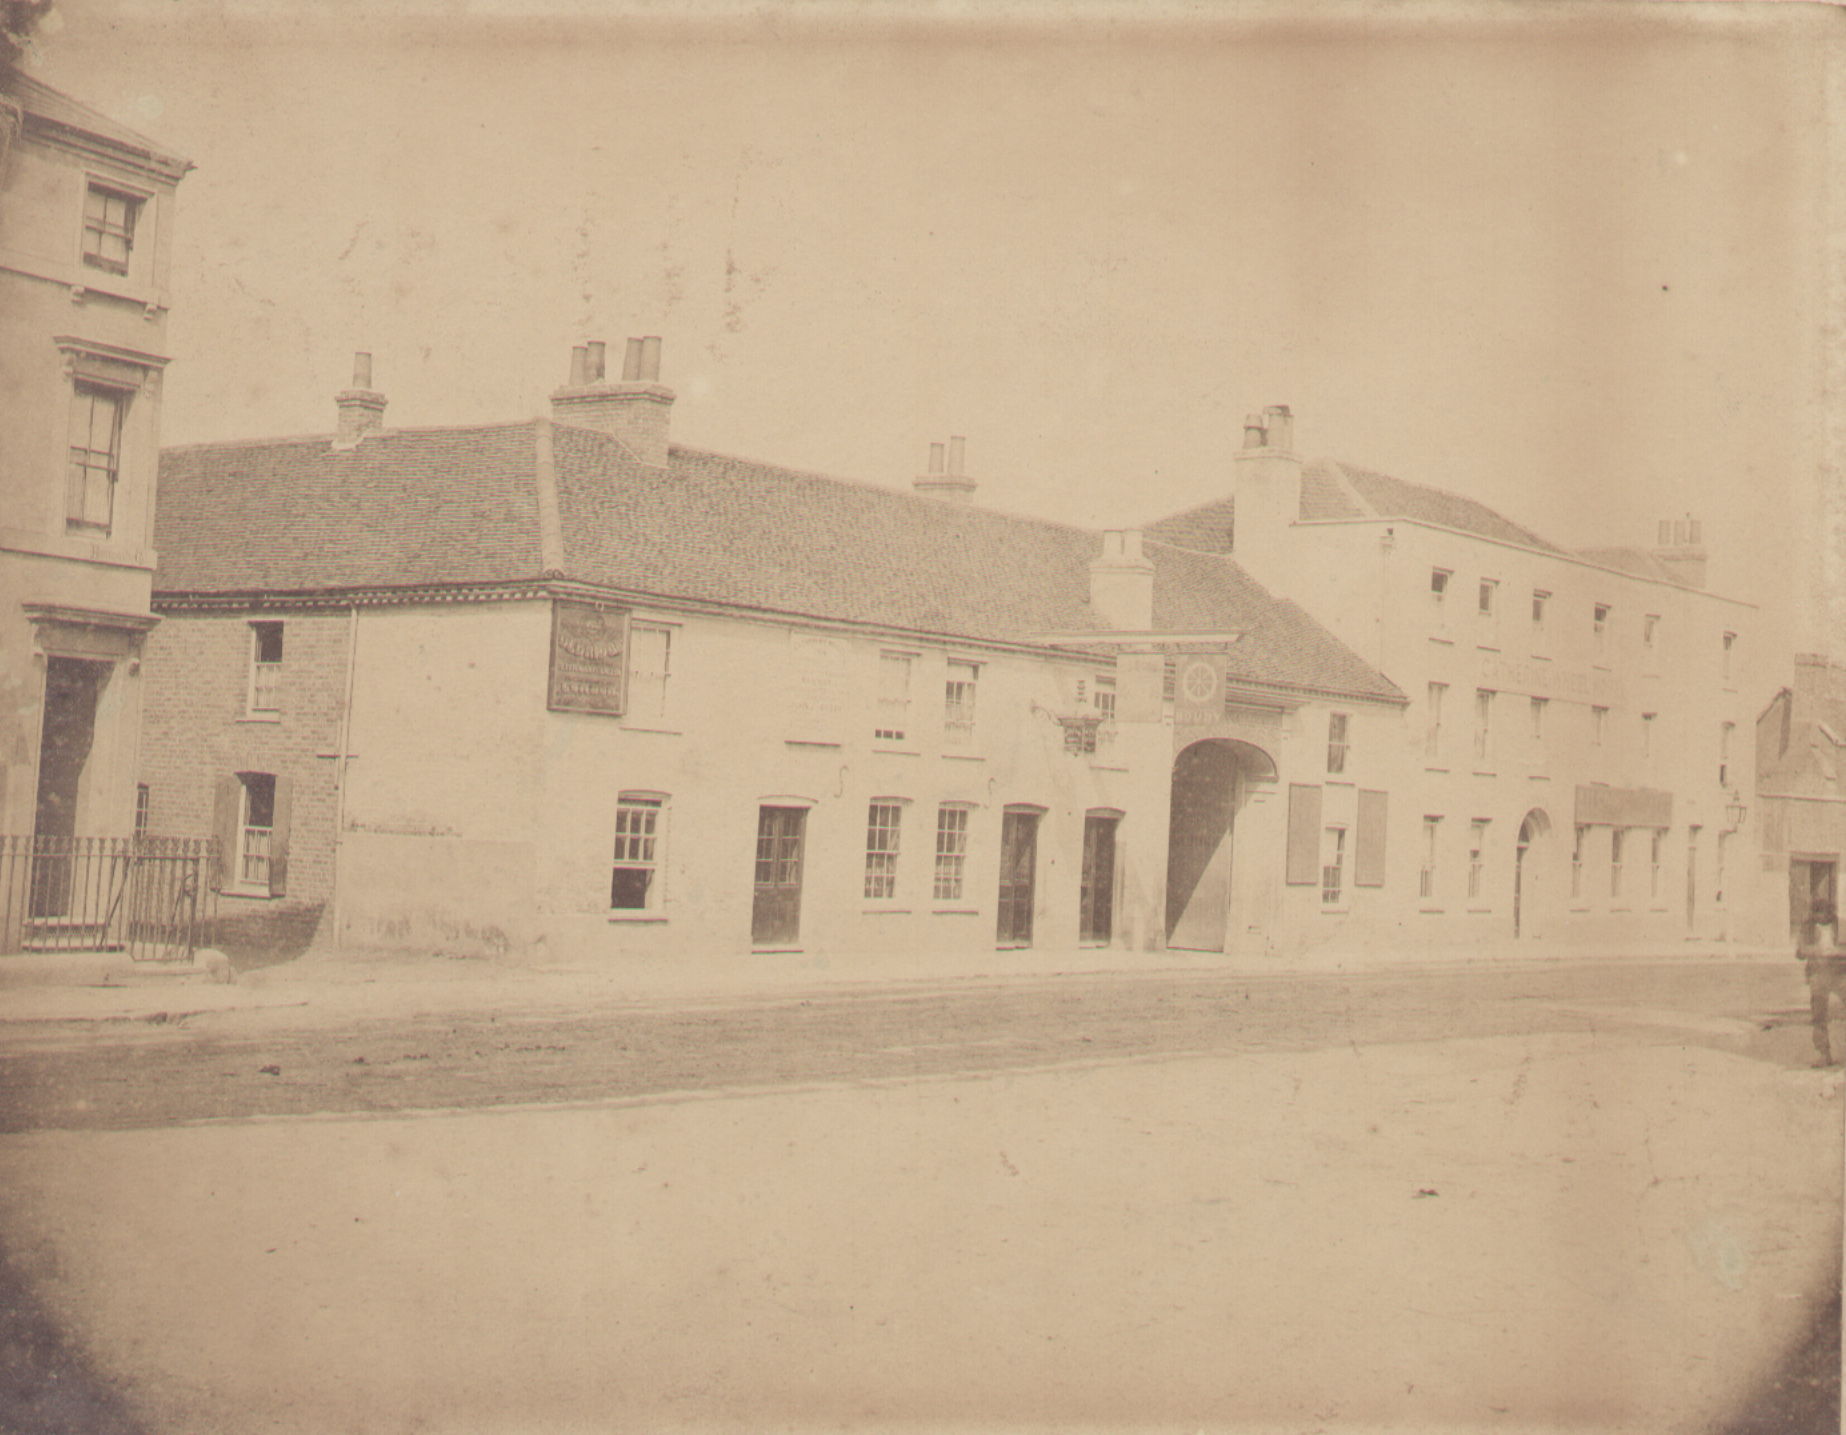 The Old Catherine Wheel pub in Hummer Lane, Egham, 1888-92